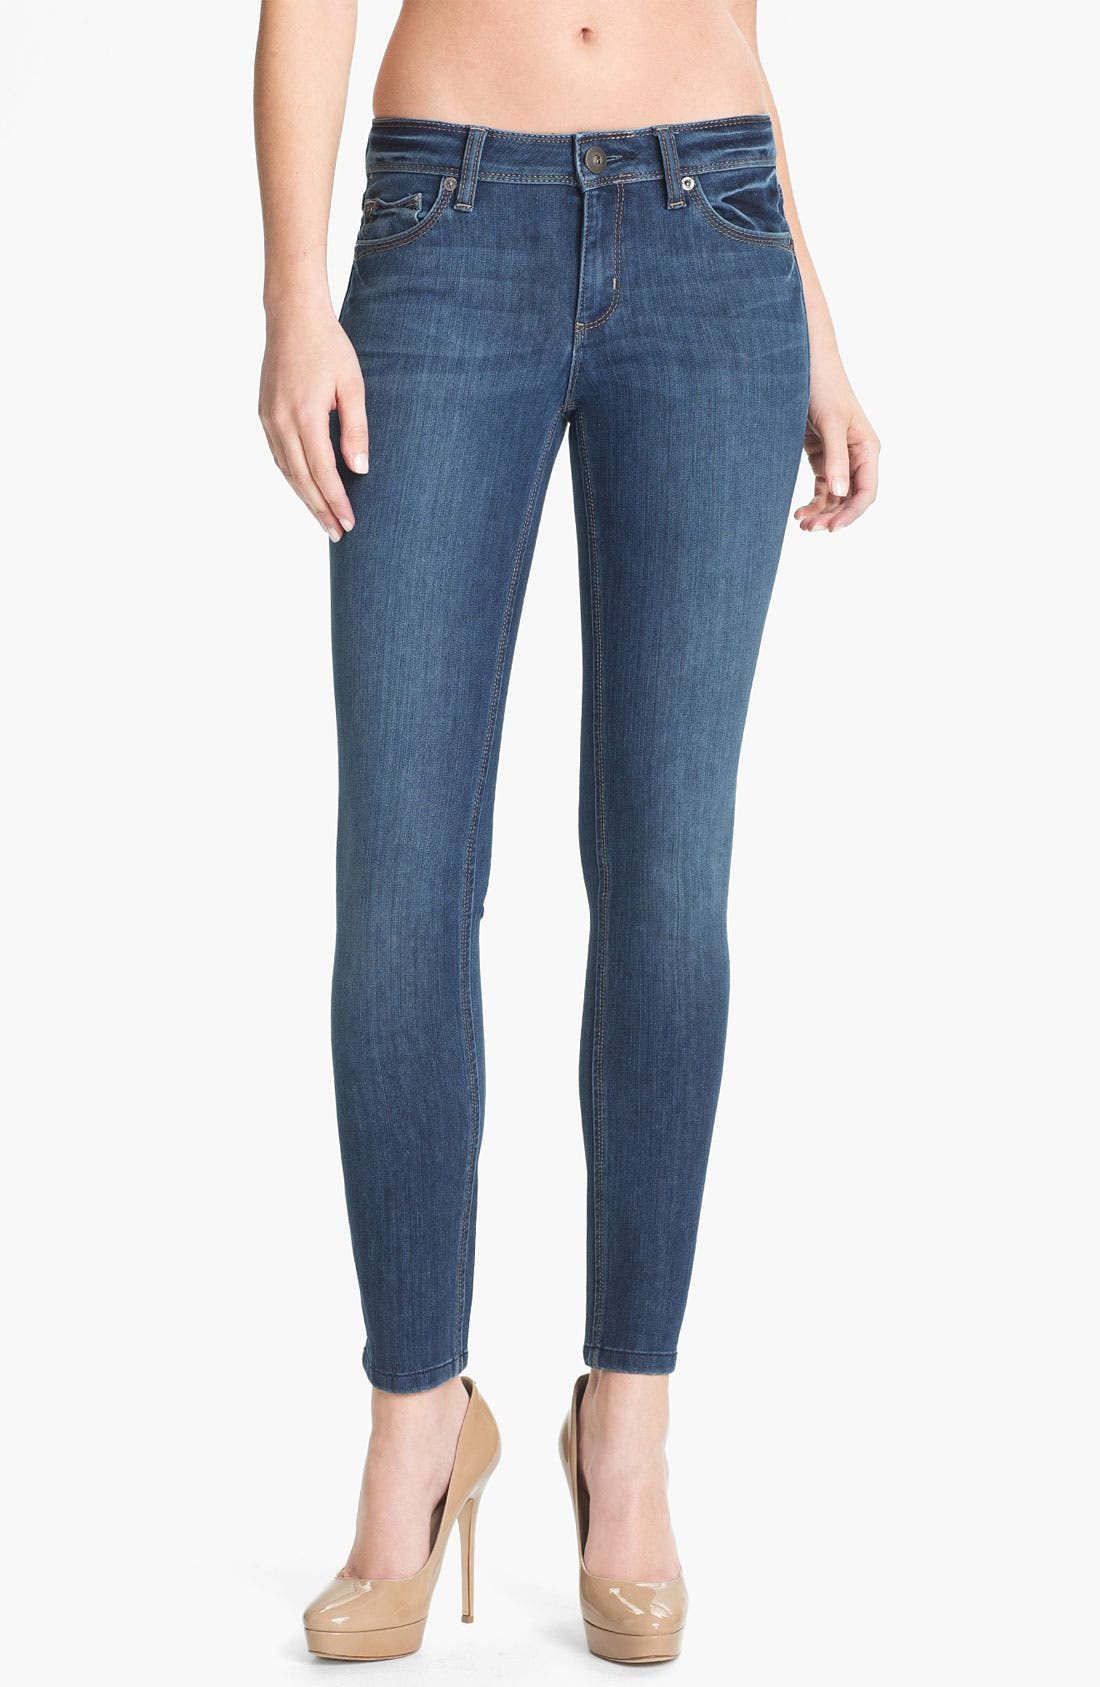 Main Image - DL1961 'Angel' X-Fit Stretch Denim Skinny Ankle Jeans (Zeppelin)